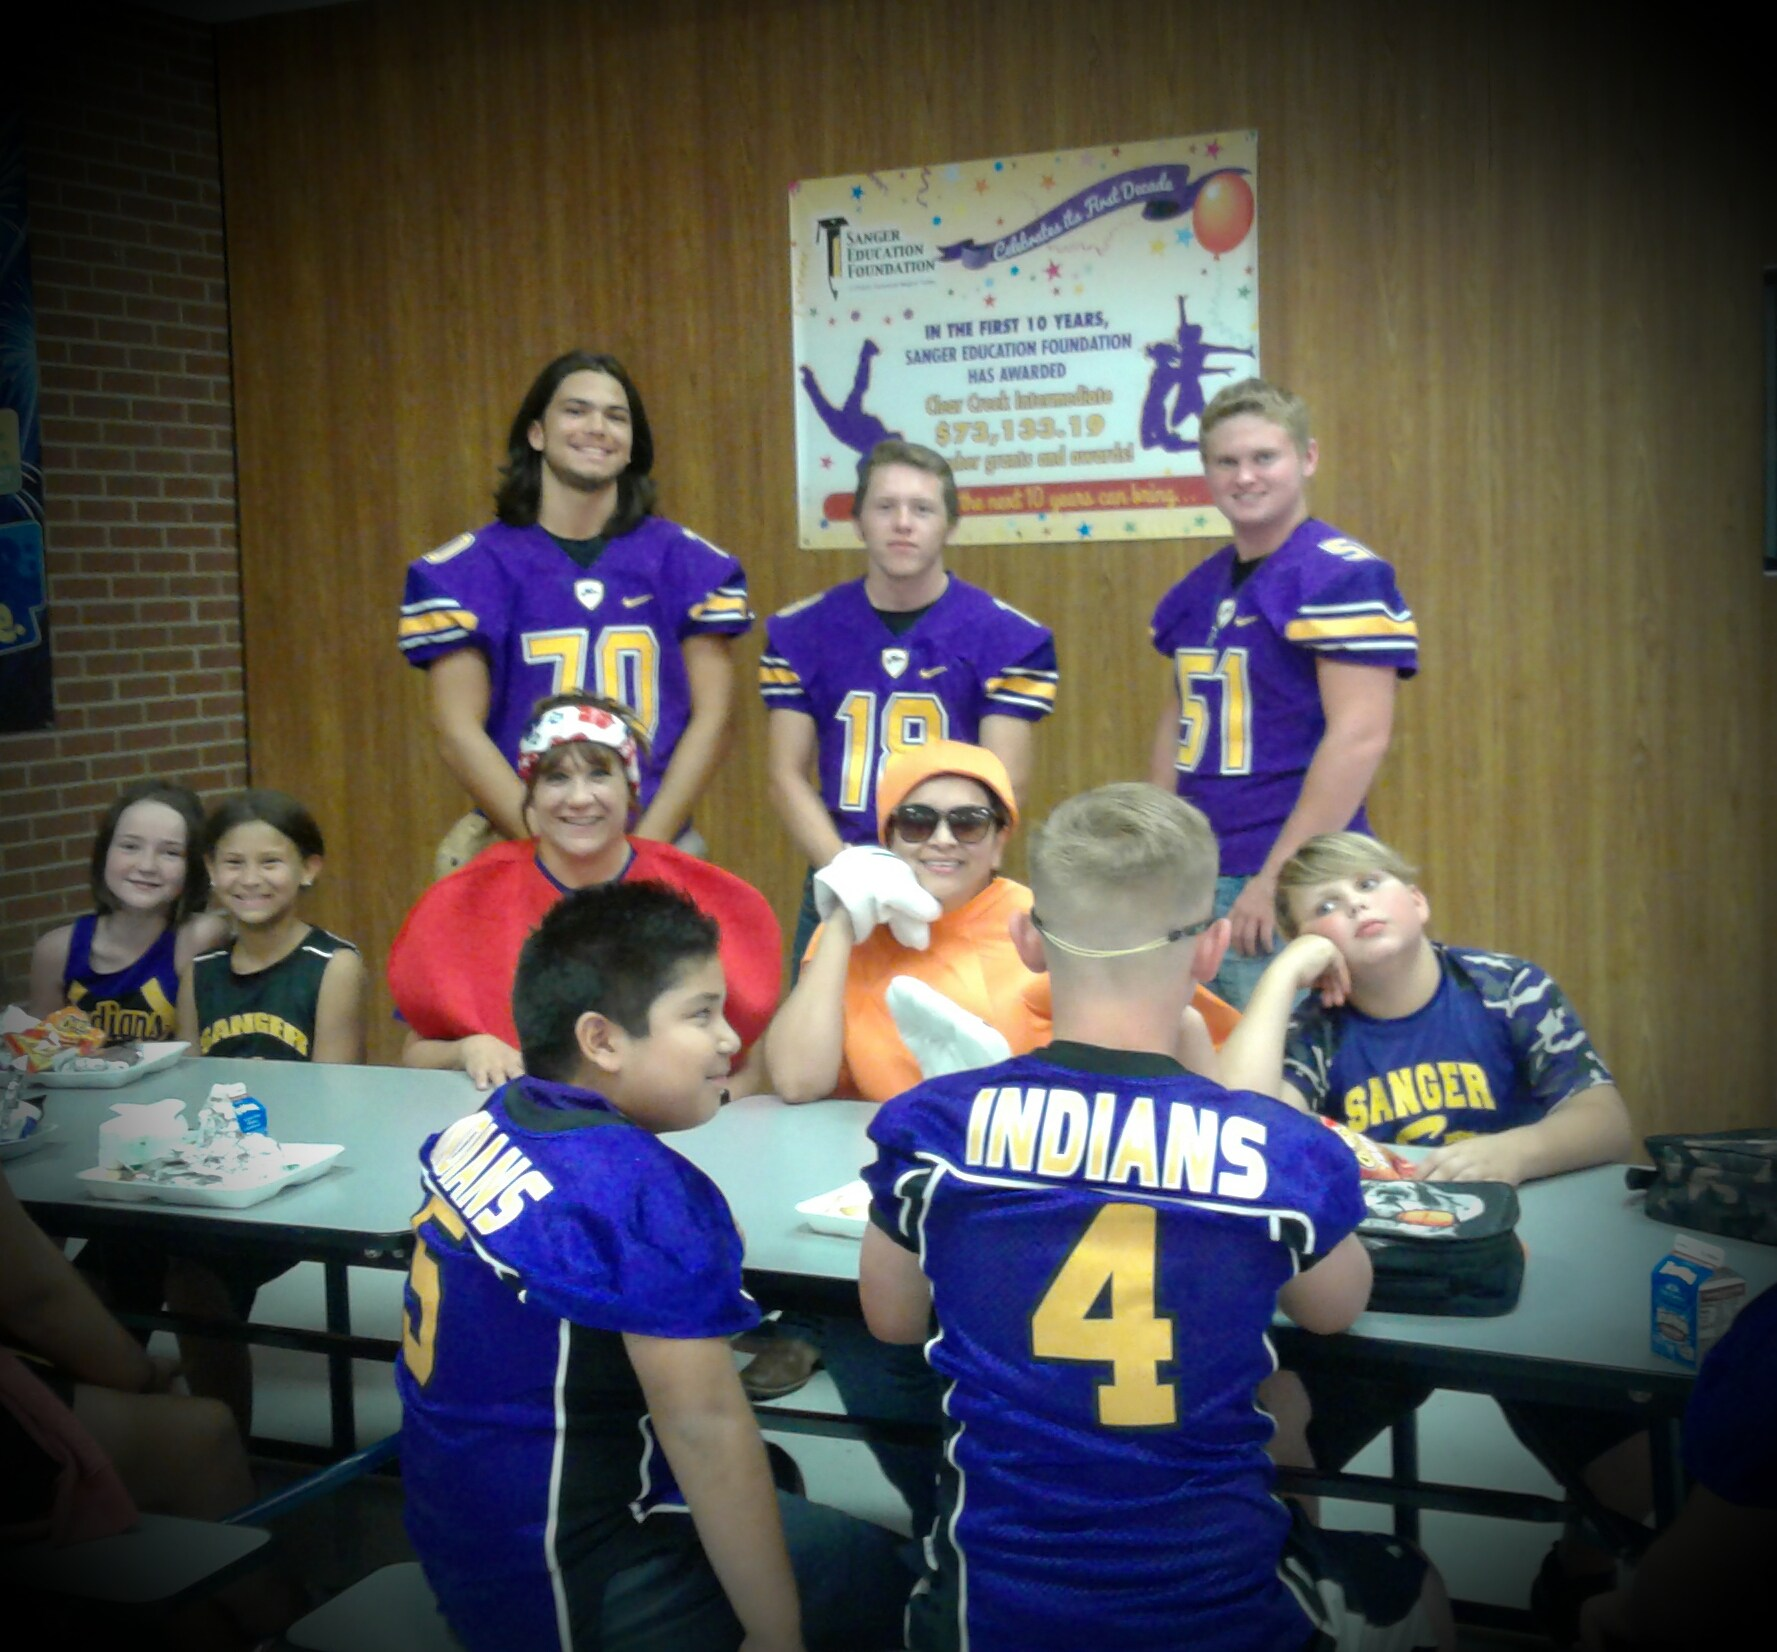 SHS Football players work with Chisholm Trail Elementary Students